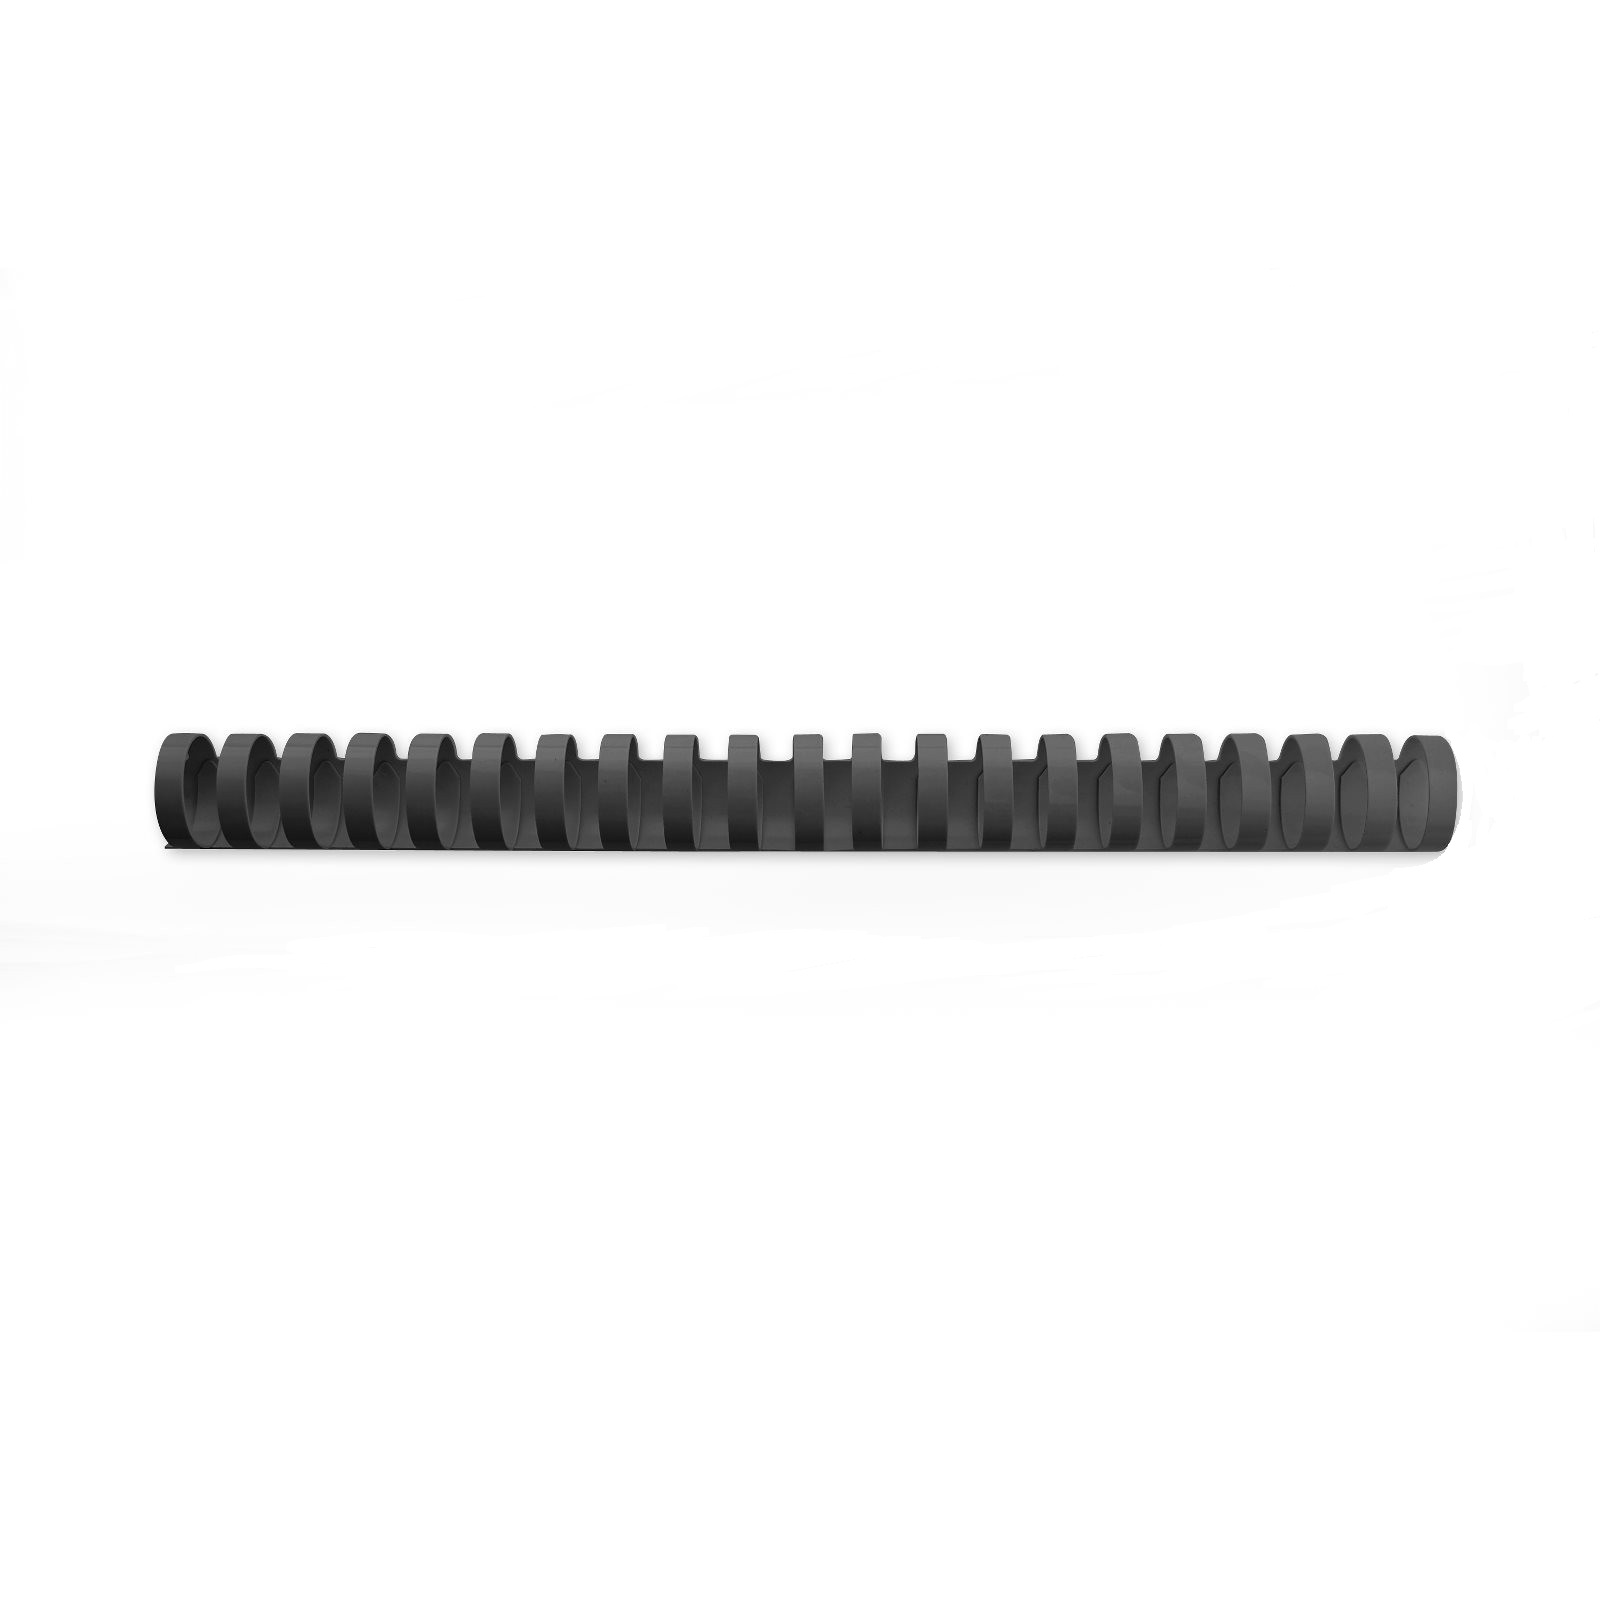 GBC Bind Combs 21 Ring A4 10mm BK PK100